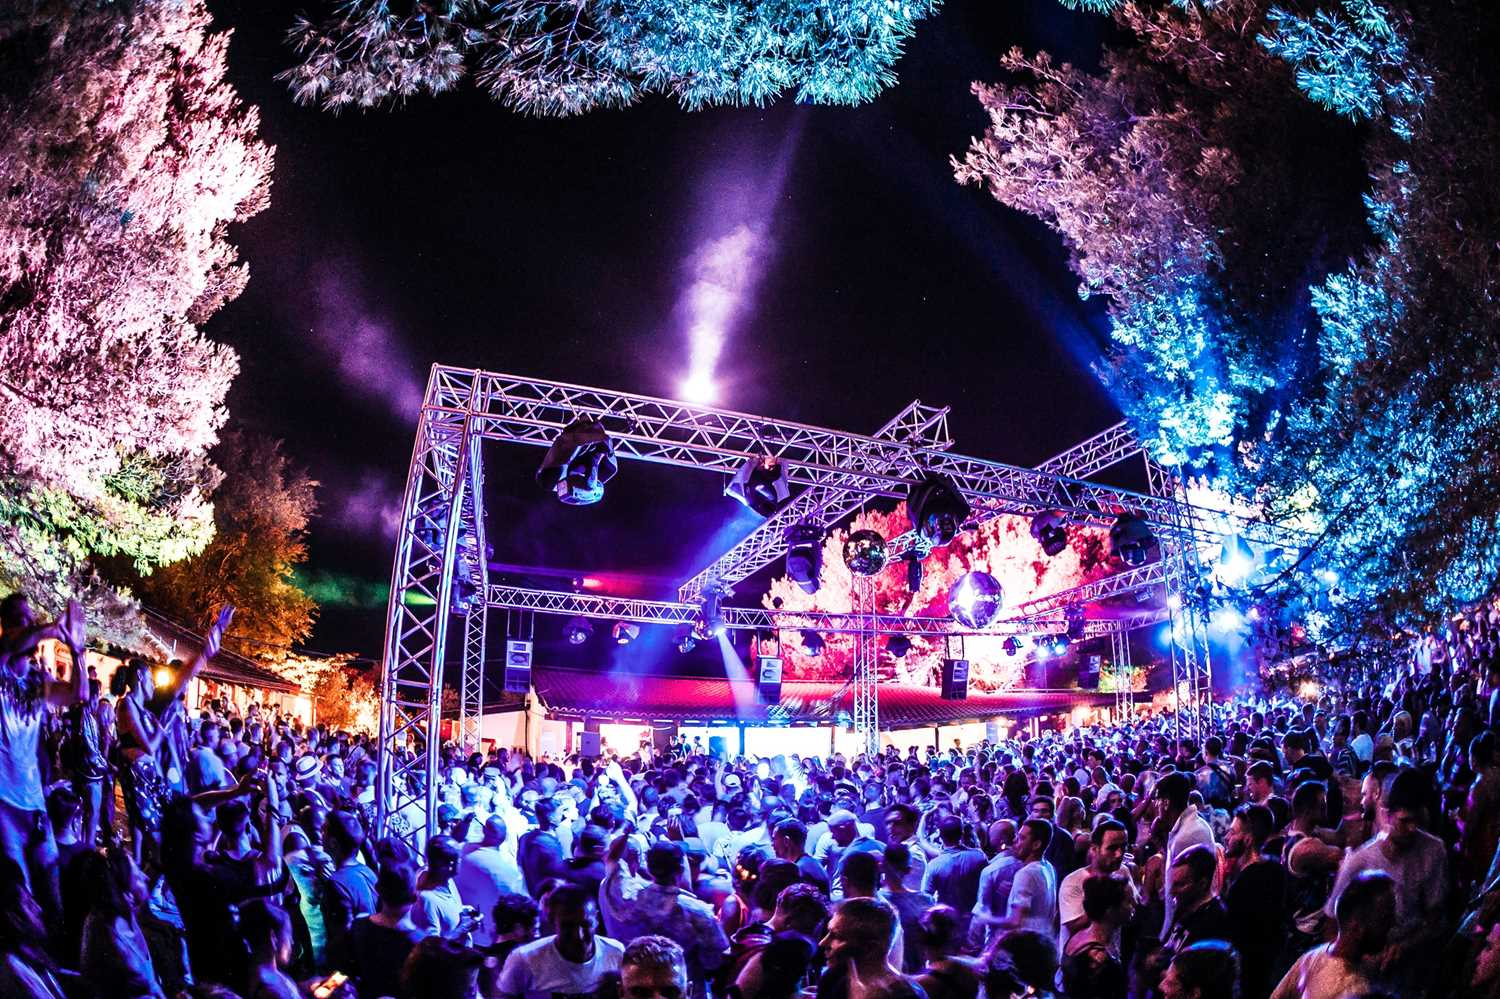 The Ultimate Music Festival Experience for 2 at Defected Croatia 2021, Plus Flights, Accommodation - Image 2 of 5